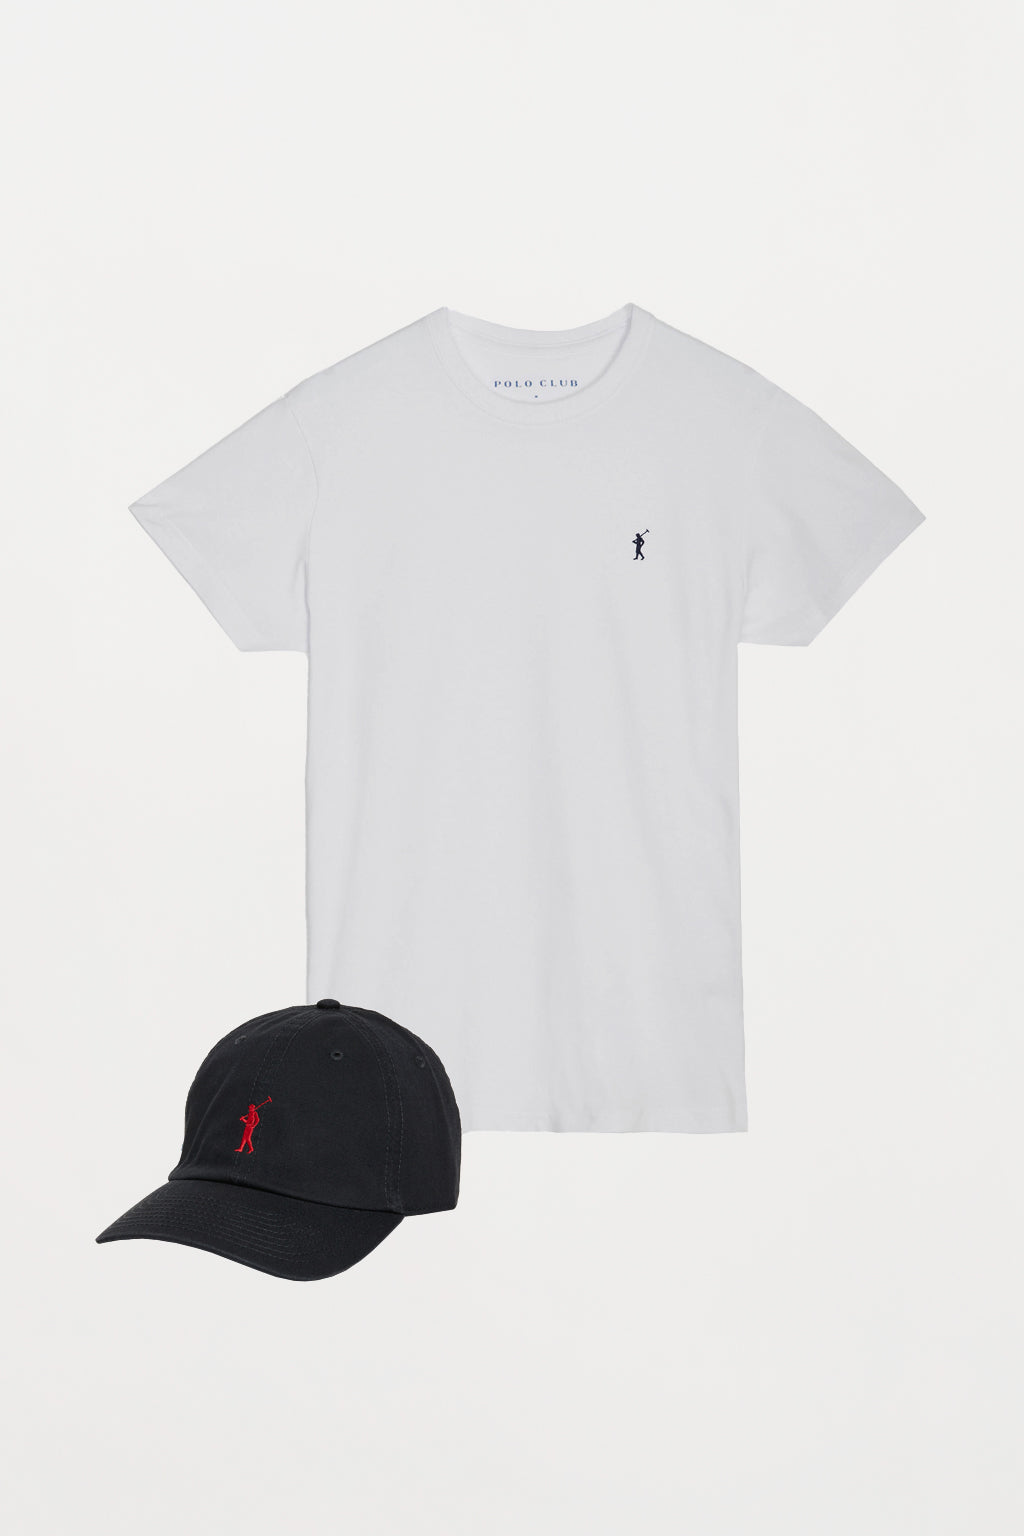 Polo shirt and cap with embroidered logo pack